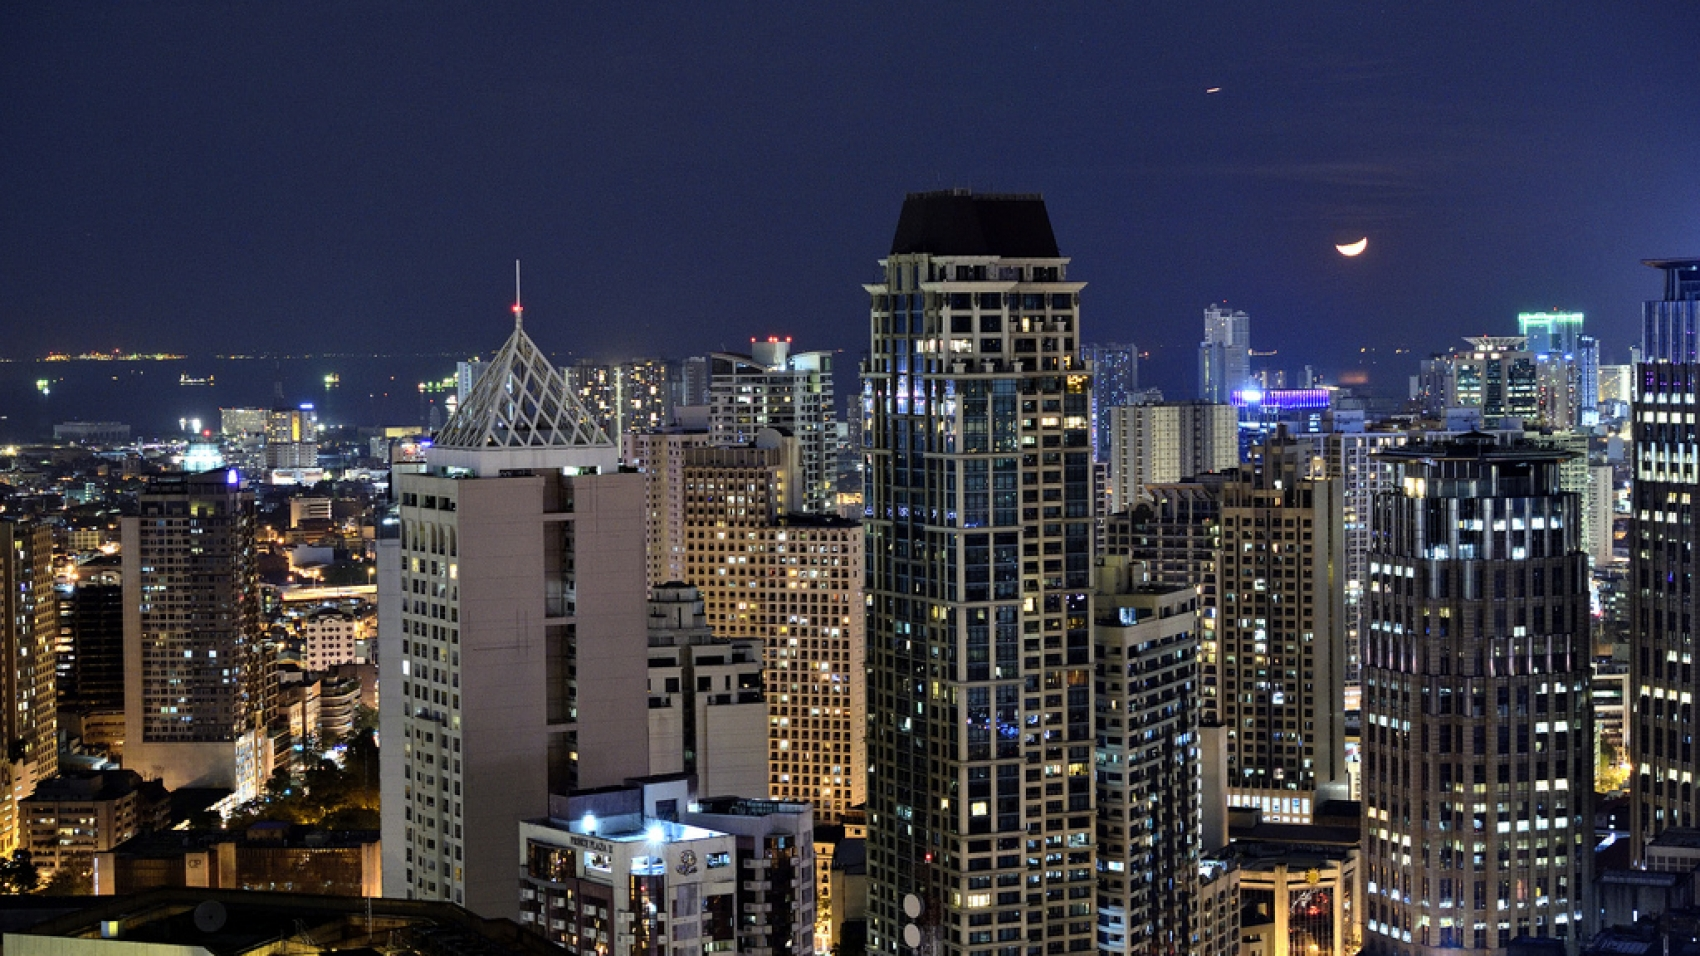 Aerial view of Makati City at night, one of Philippines BPO hubs